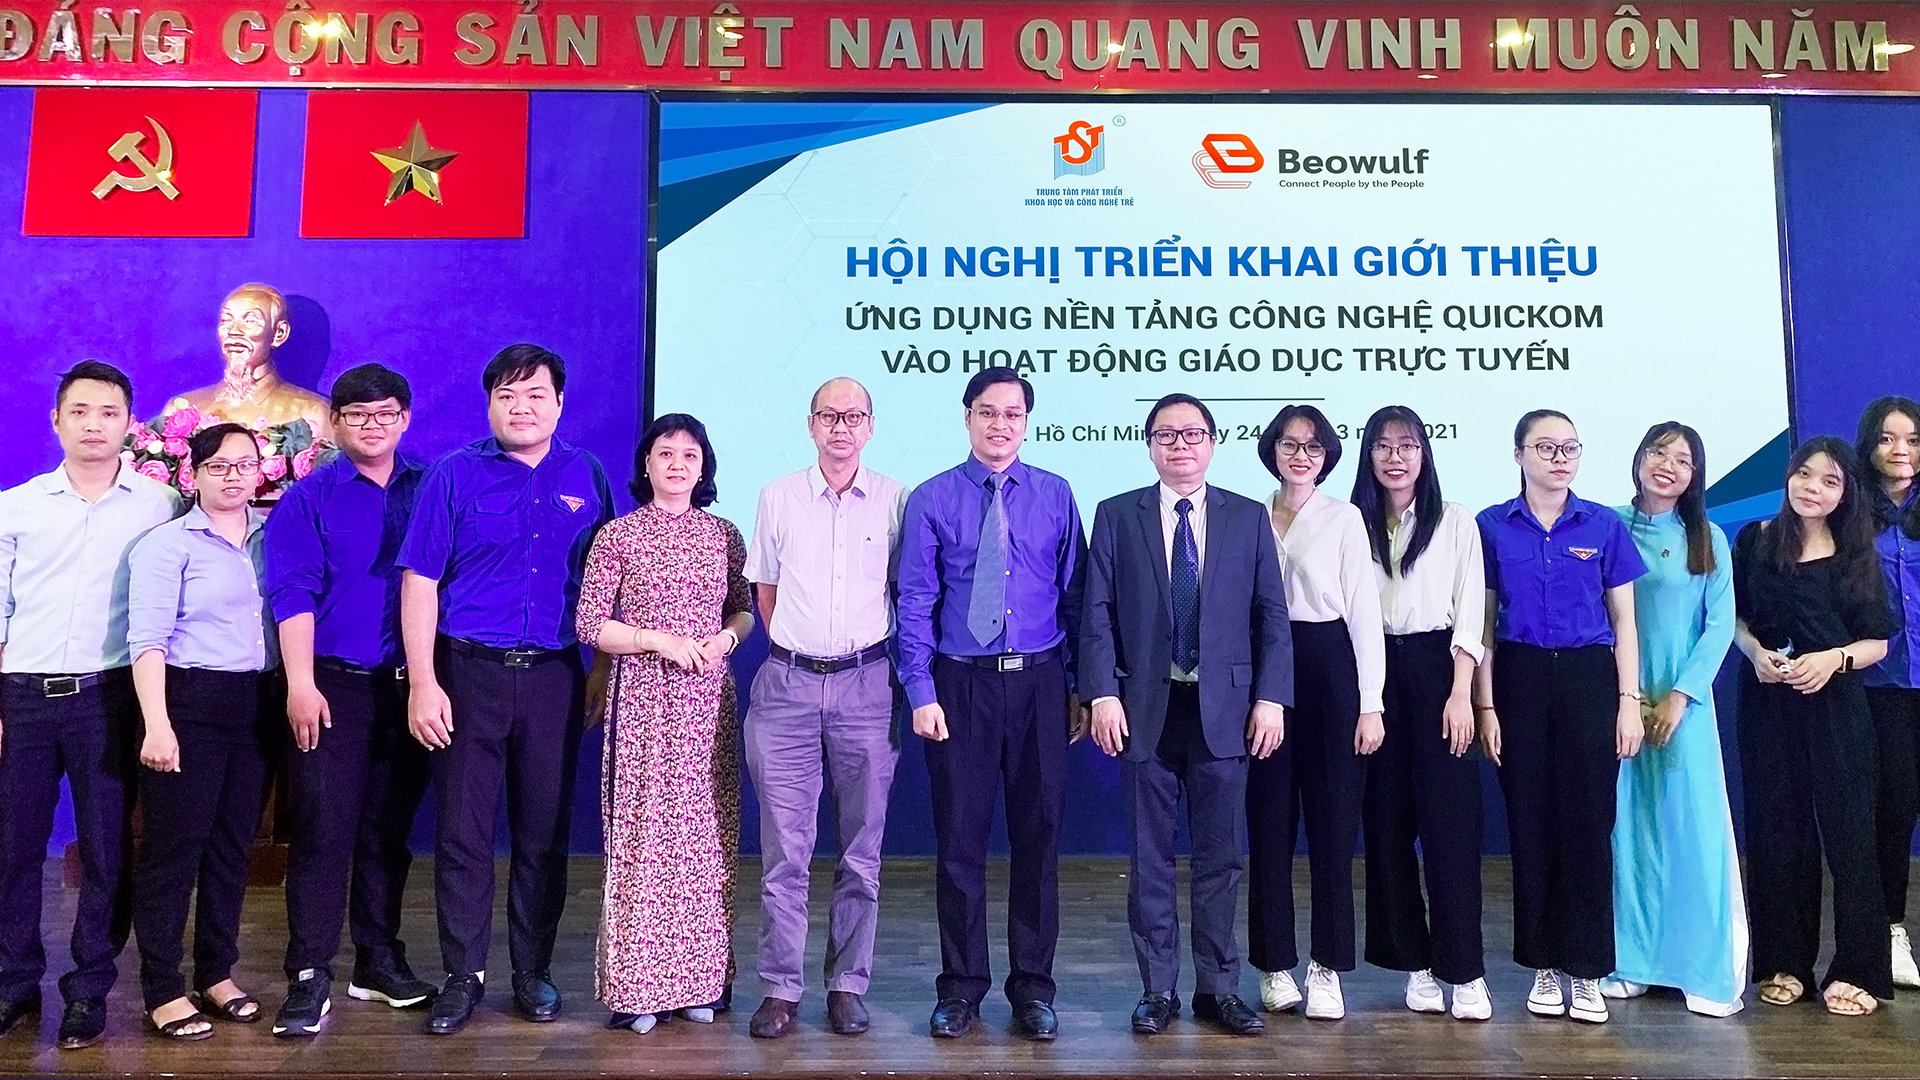 Beowulf Blockchain Partners with the Ho Chi Minh Communist Youth Union to Deploy QUICKOM Technology for the Academic Community Beowulf Blockchain